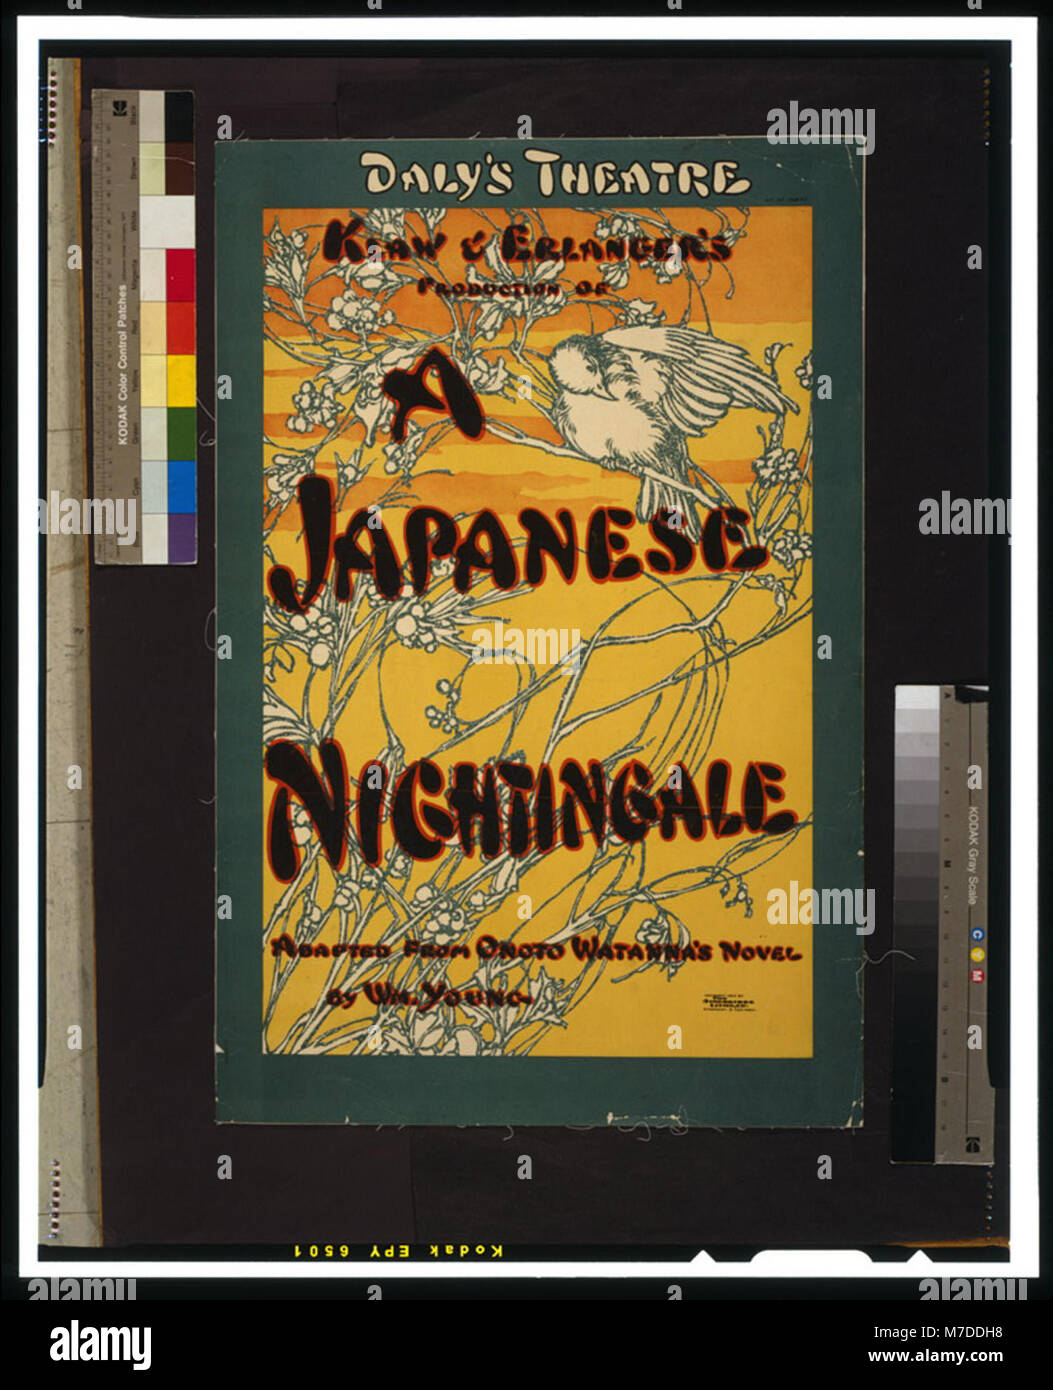 Klaw & Erlanger's production of A Japanese nightingale adapted from Onoto Watanna's novel by Wm. Young. - Stock Image